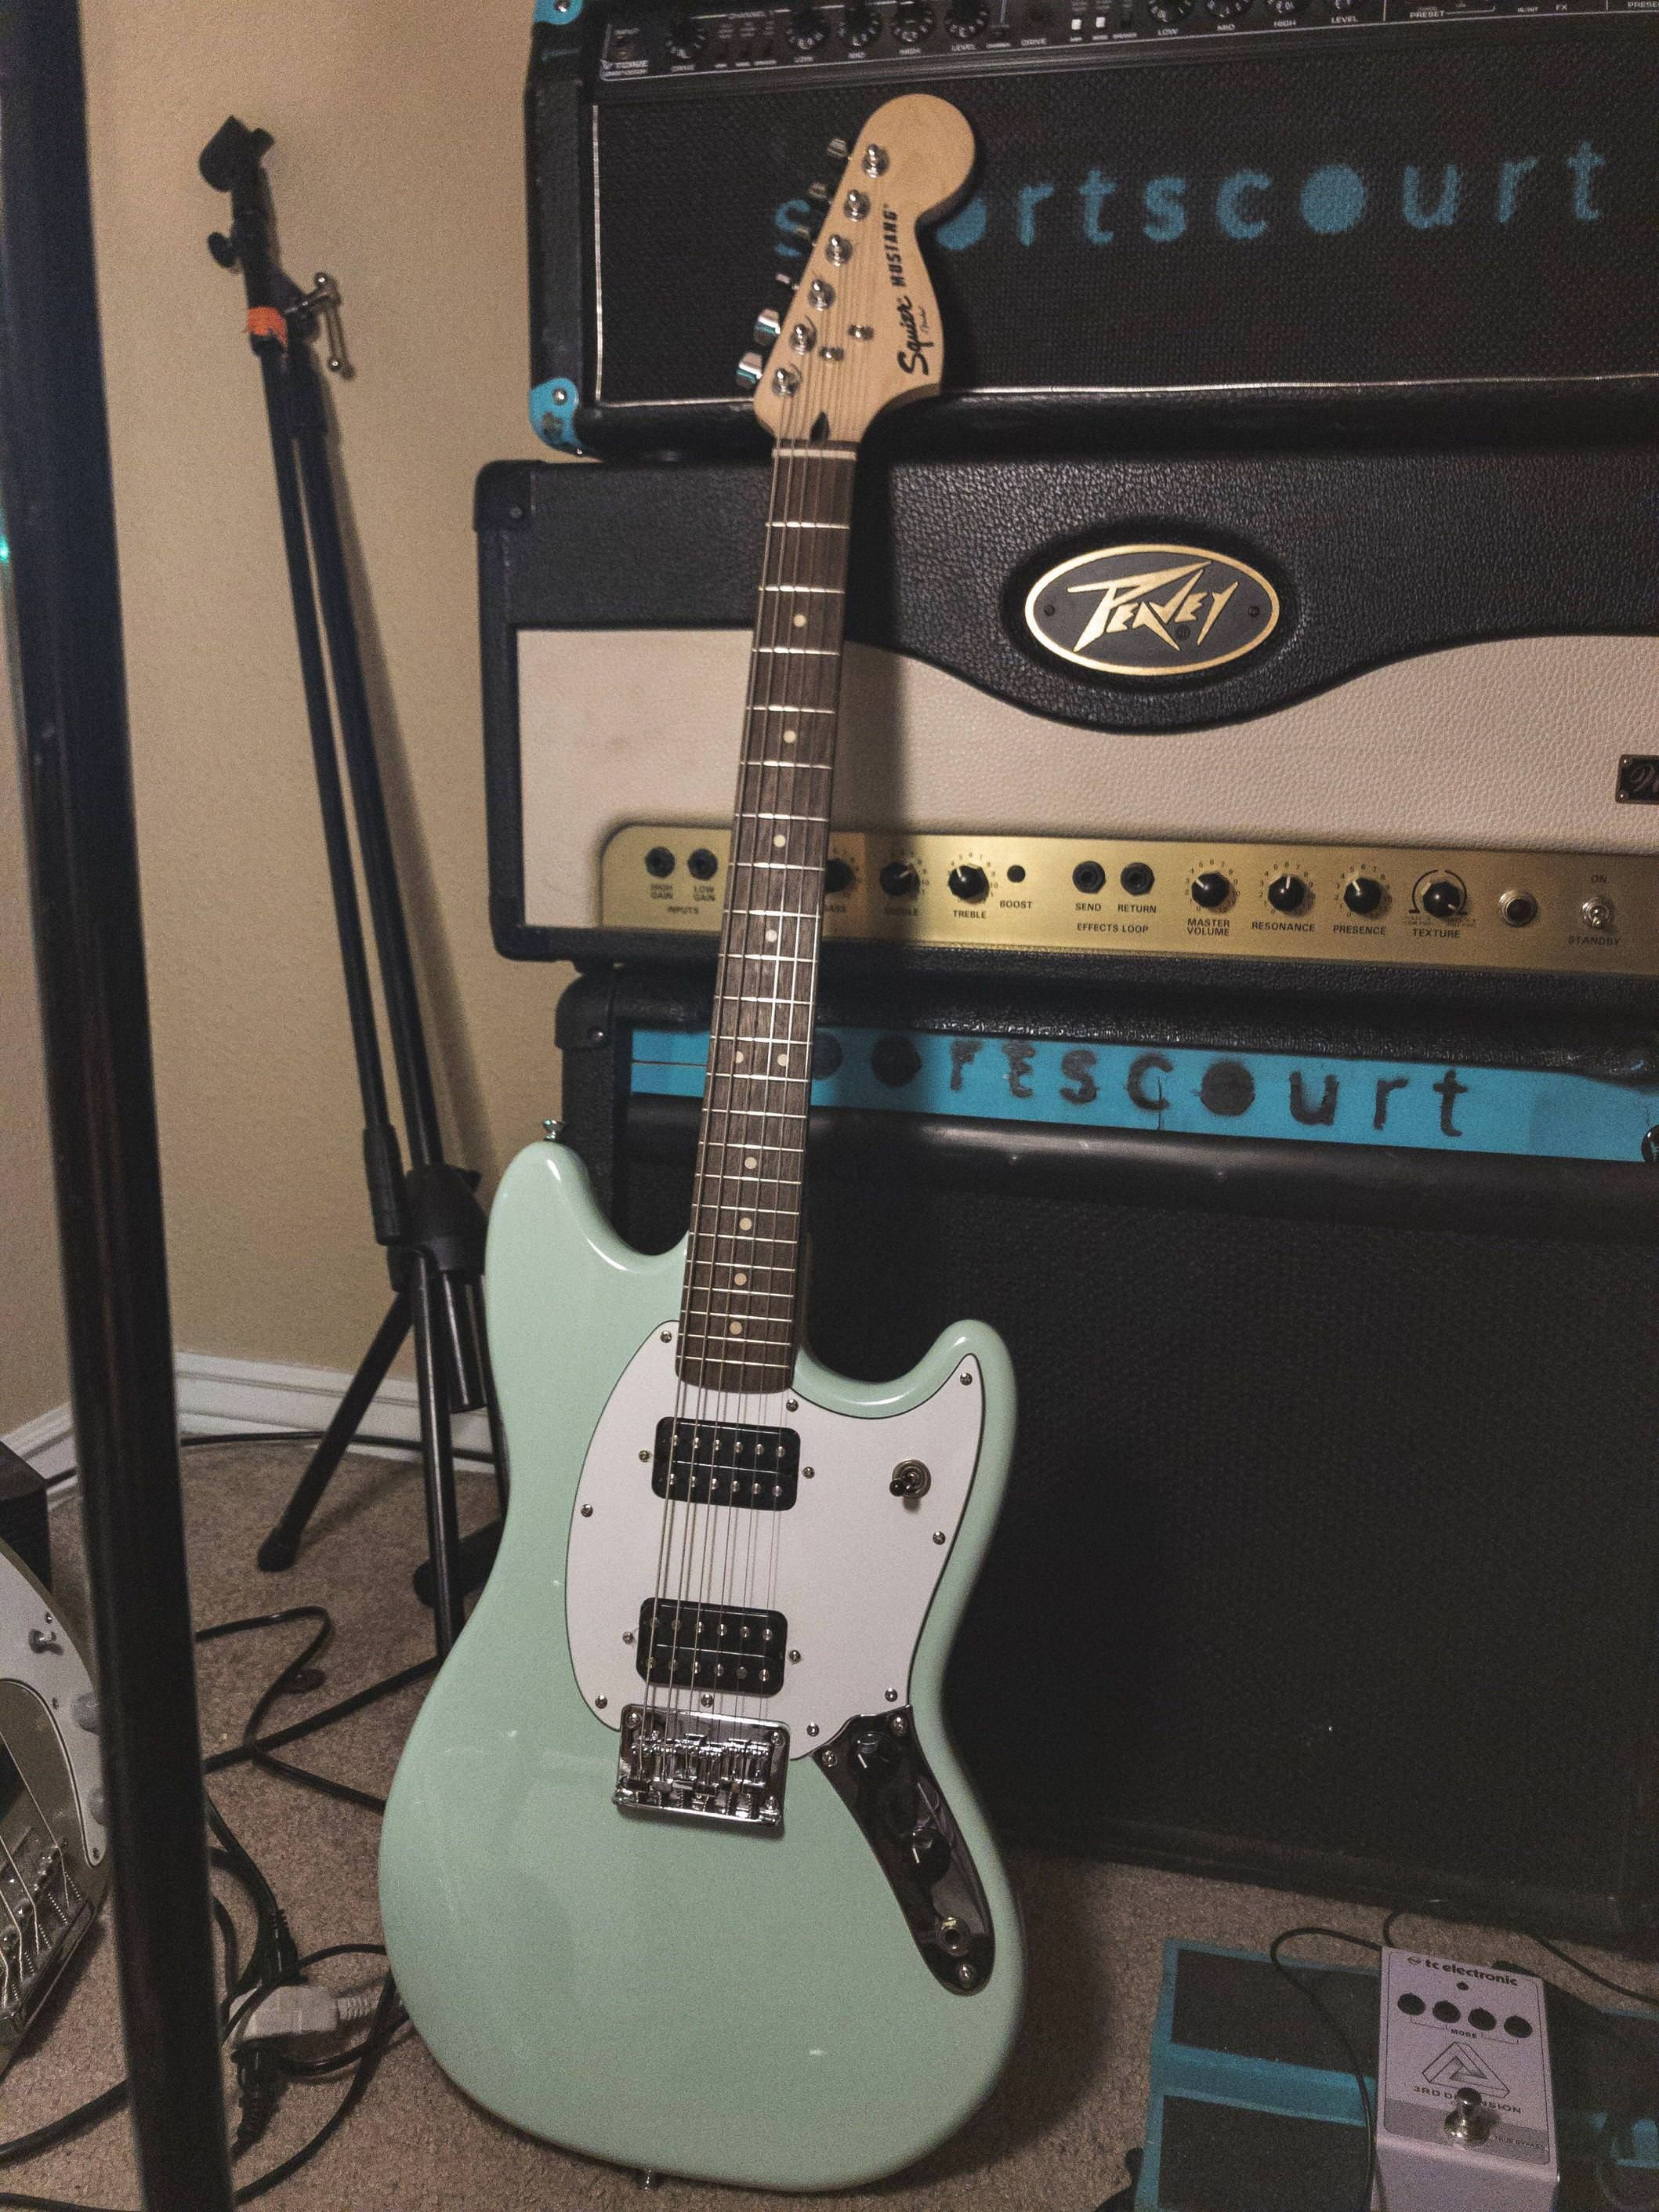 Ngd Squier Mustang Black Friday Deal Squier Guitar Mustang